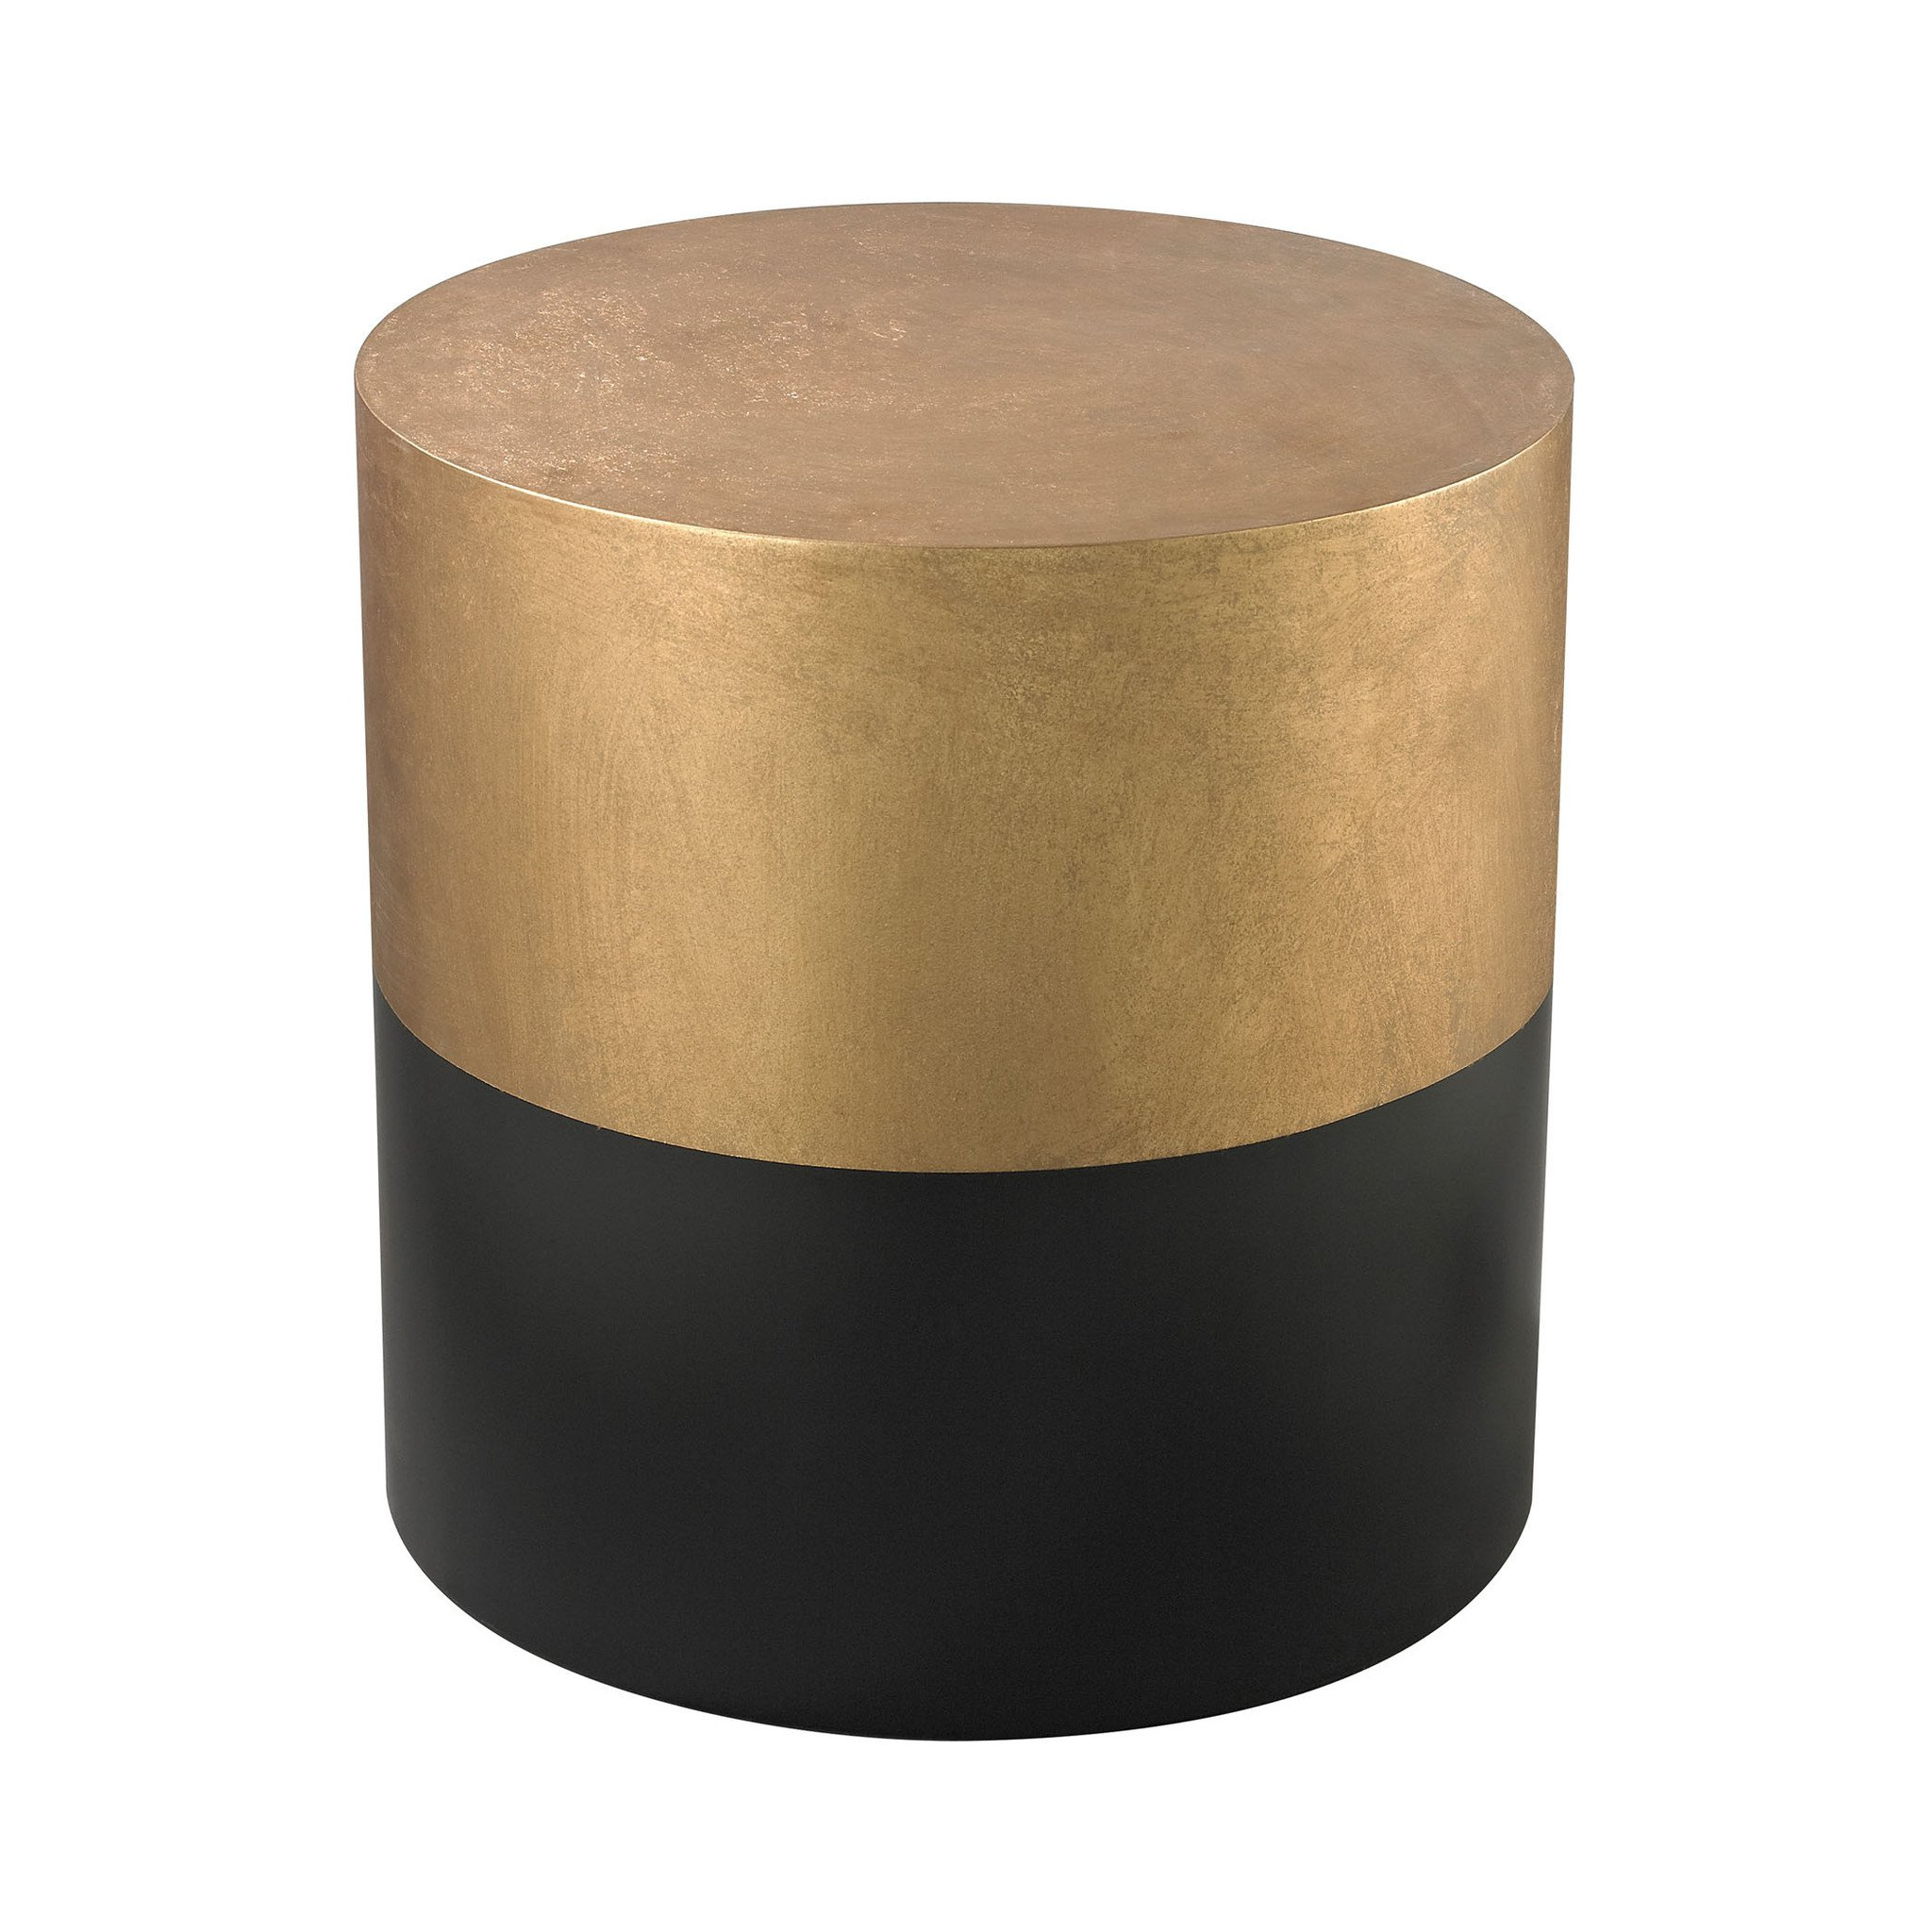 draper round wood side table black gold drum end glass display best paint for furniture tall couch reclaimed coffee small mosaic accent tables high top and chairs thomasville